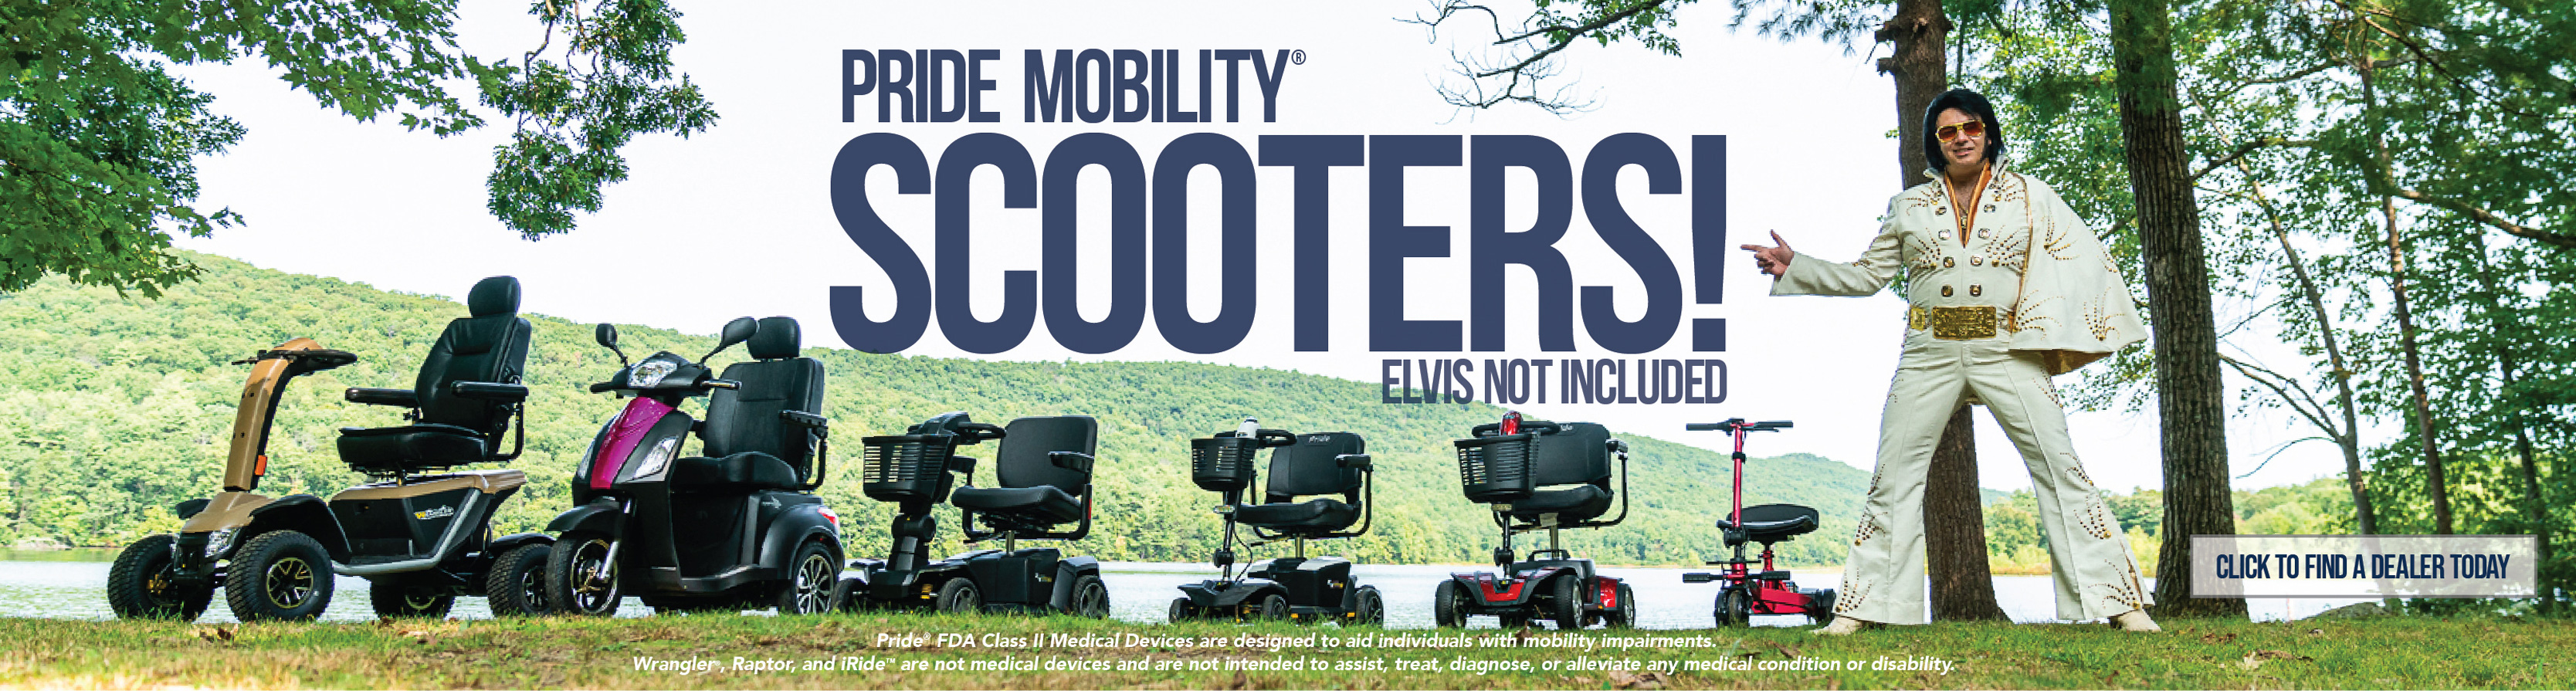 Elvis Mobility Scooter Lineup